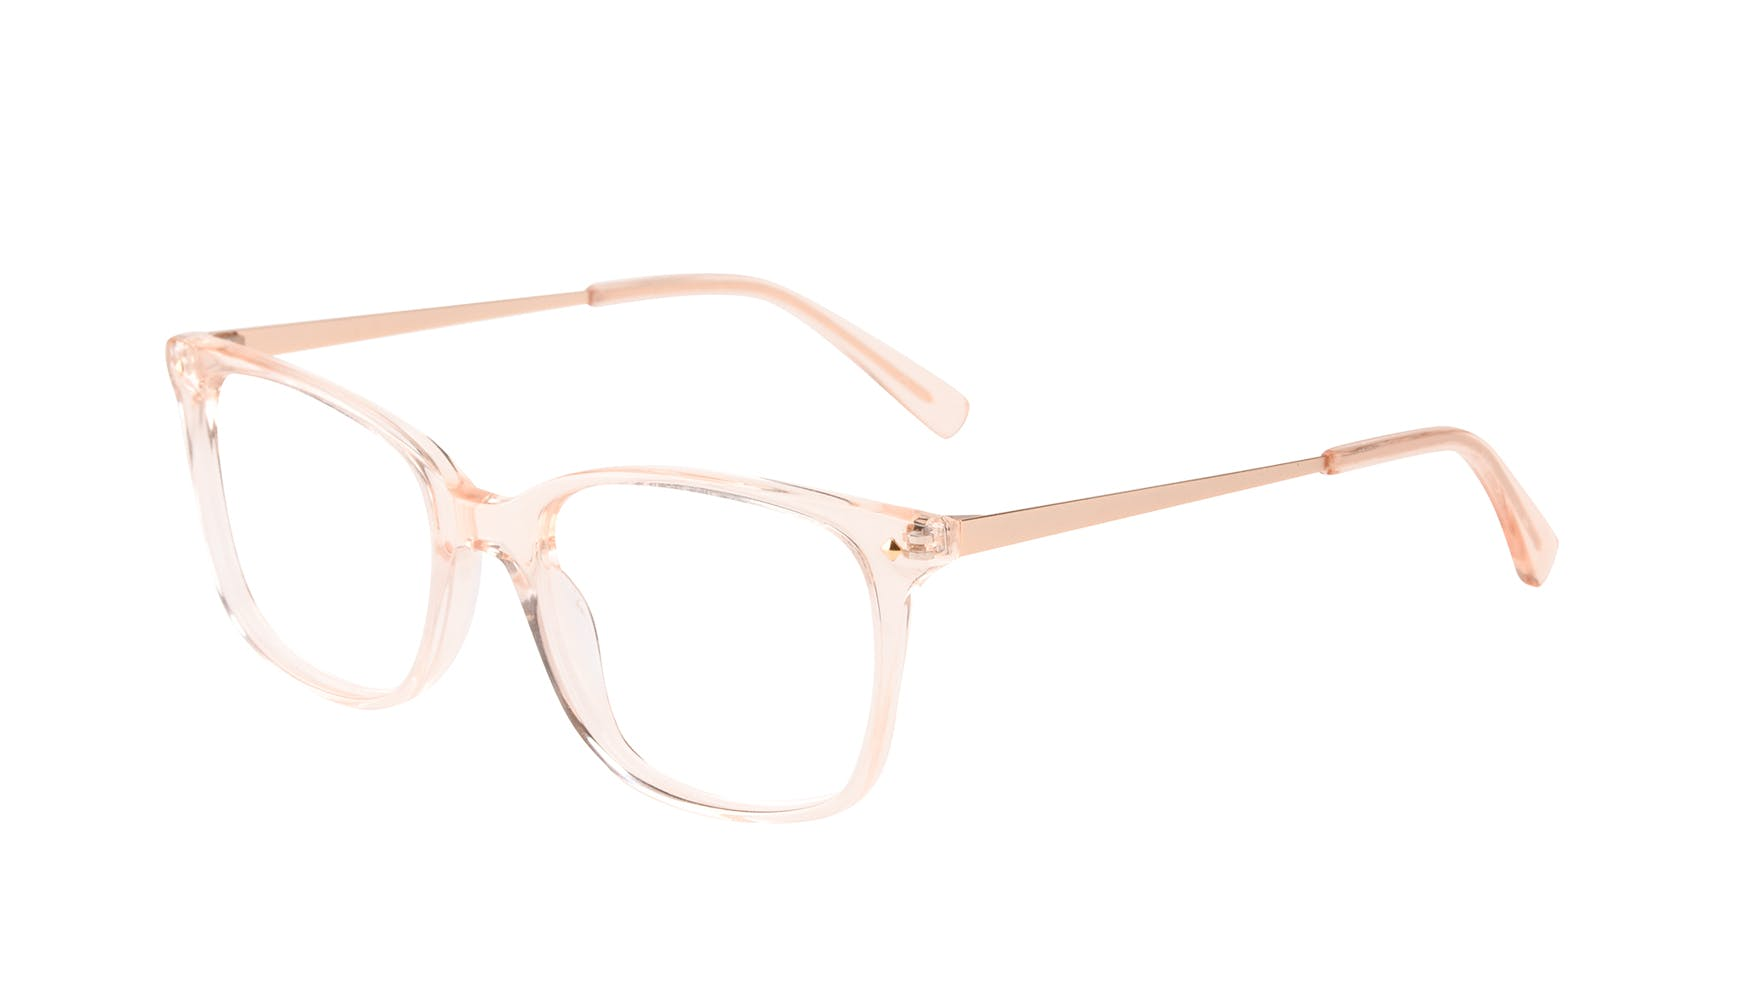 Affordable Fashion Glasses Rectangle Square Eyeglasses Women Refine Blond Tilt